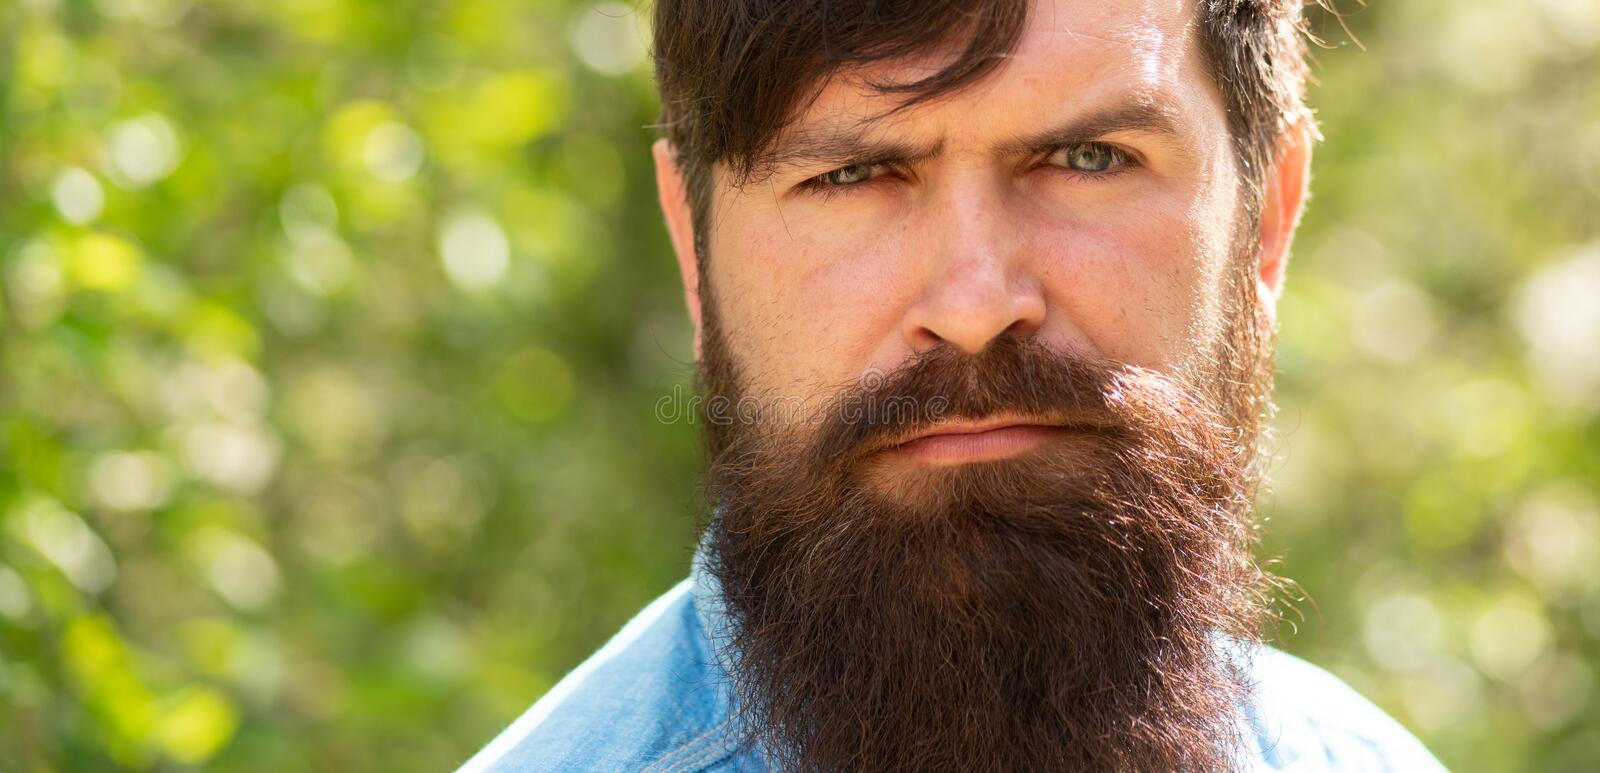 Man on nature background. Bearded guy. Young male hipster. Attractive man with green eyes. Male portrait. Handsome guy royalty free stock photo